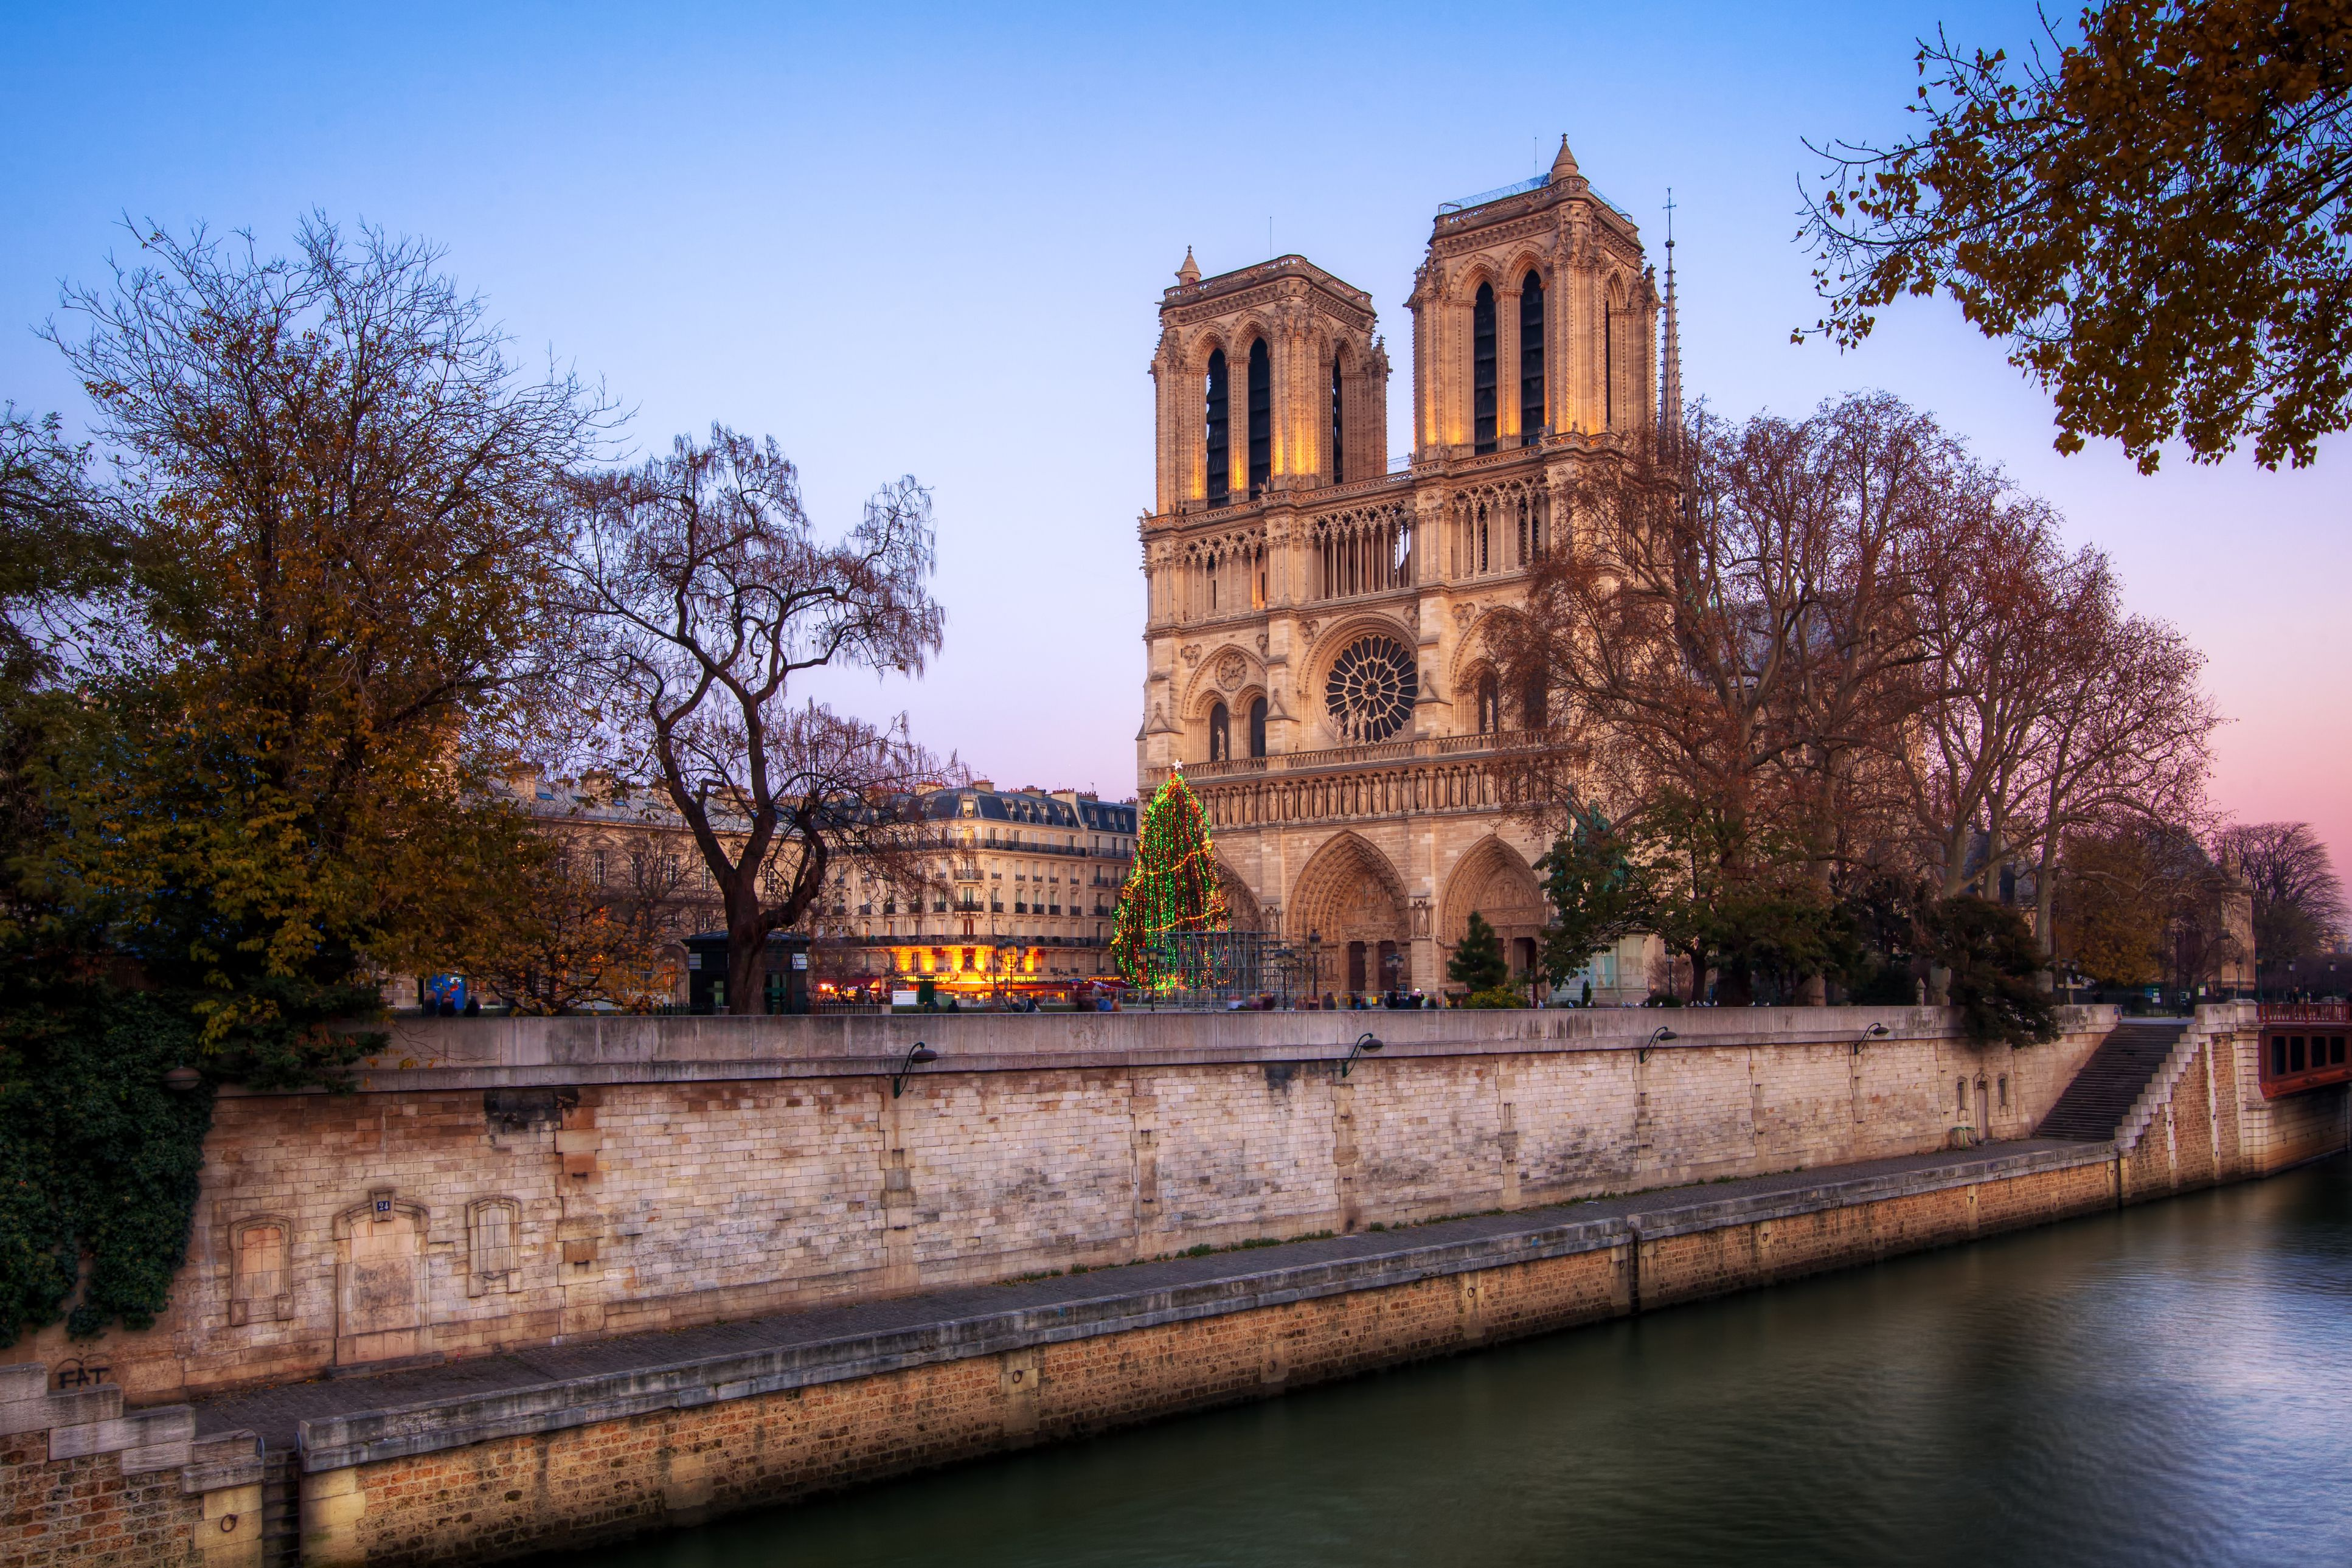 Fall Aesthetic Wallpaper The 10 Most Beautiful Churches And Cathedrals In Paris